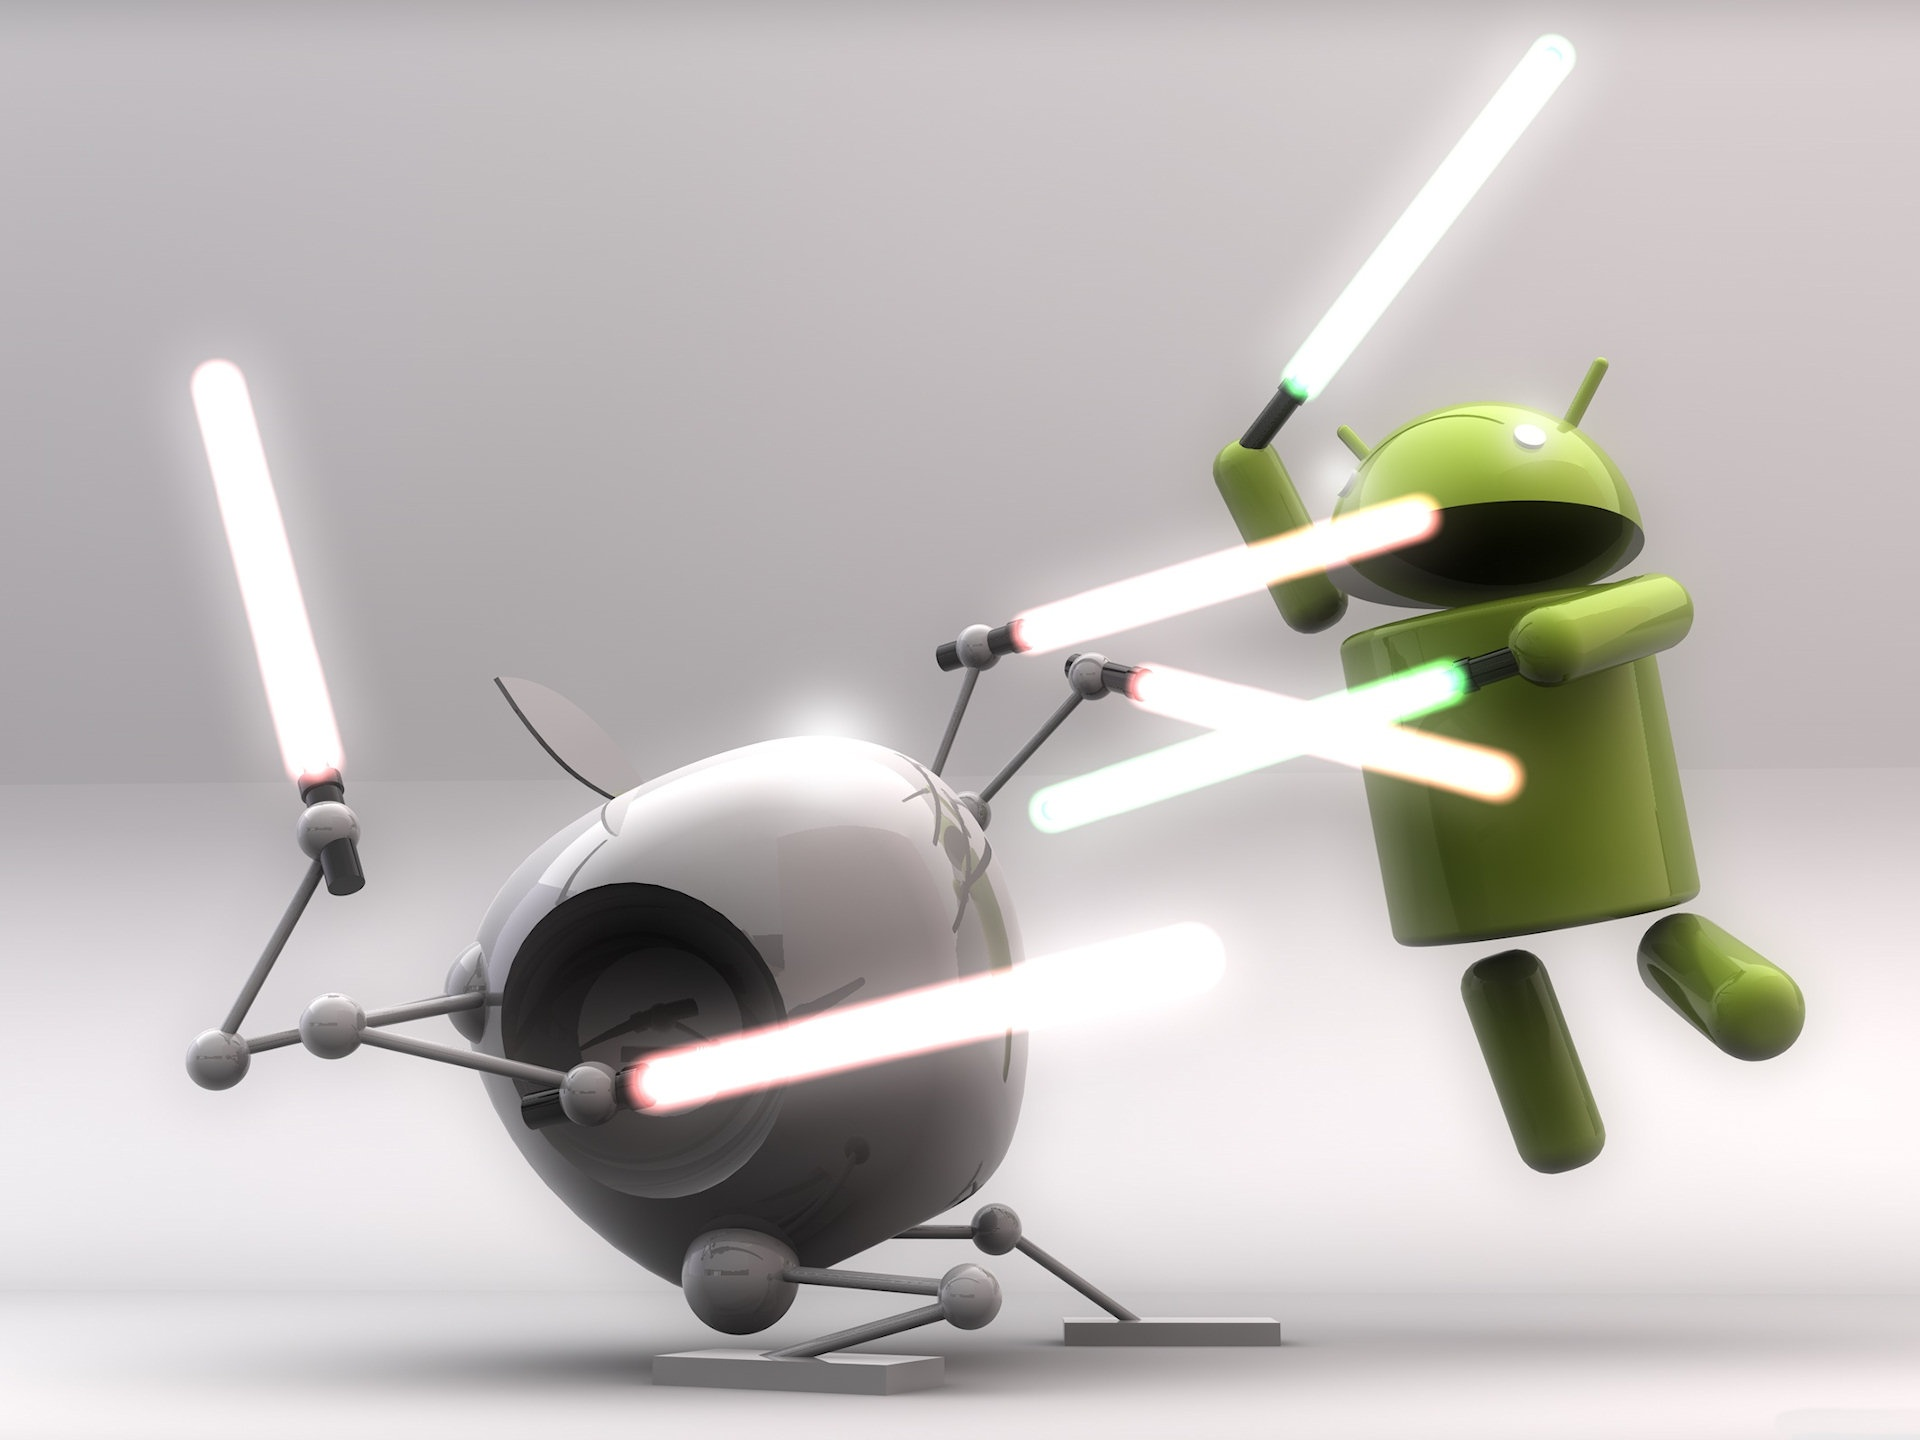 android_vs_iphone_wallpaper-1920x1440